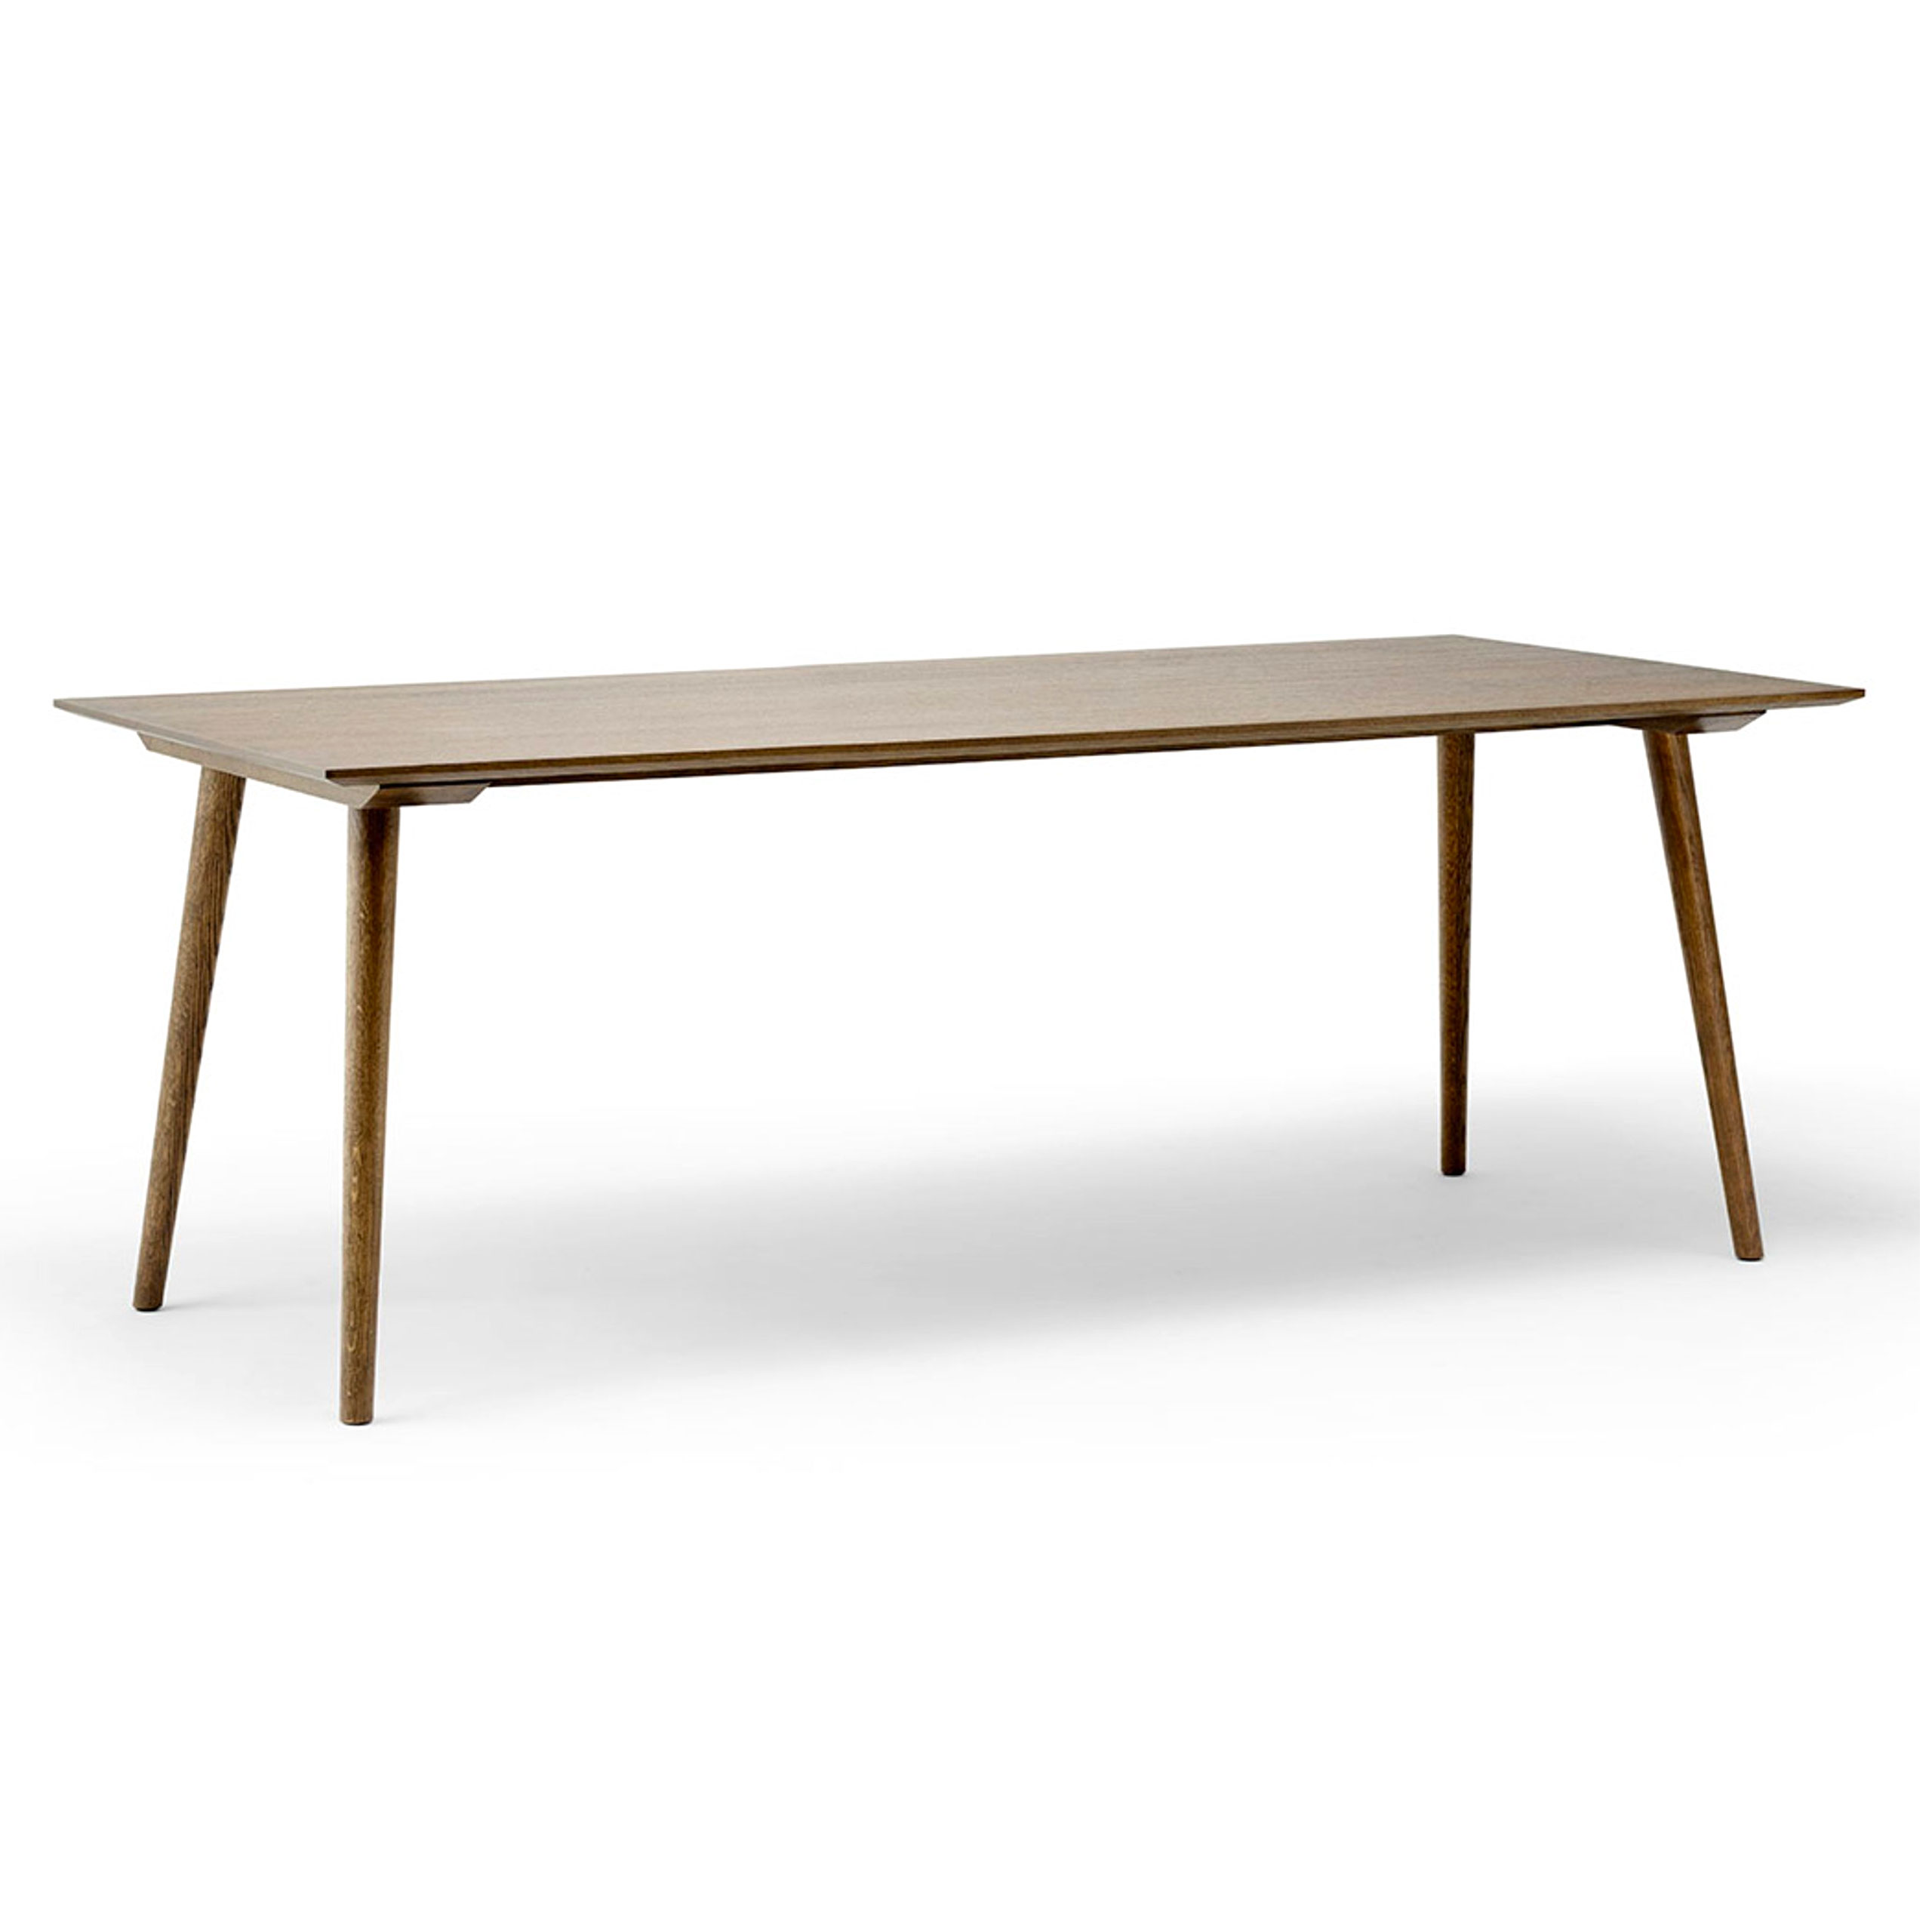 Bilde av &Tradition-In Between Table SK6 100x250 cm, Smoked lacquered Oak